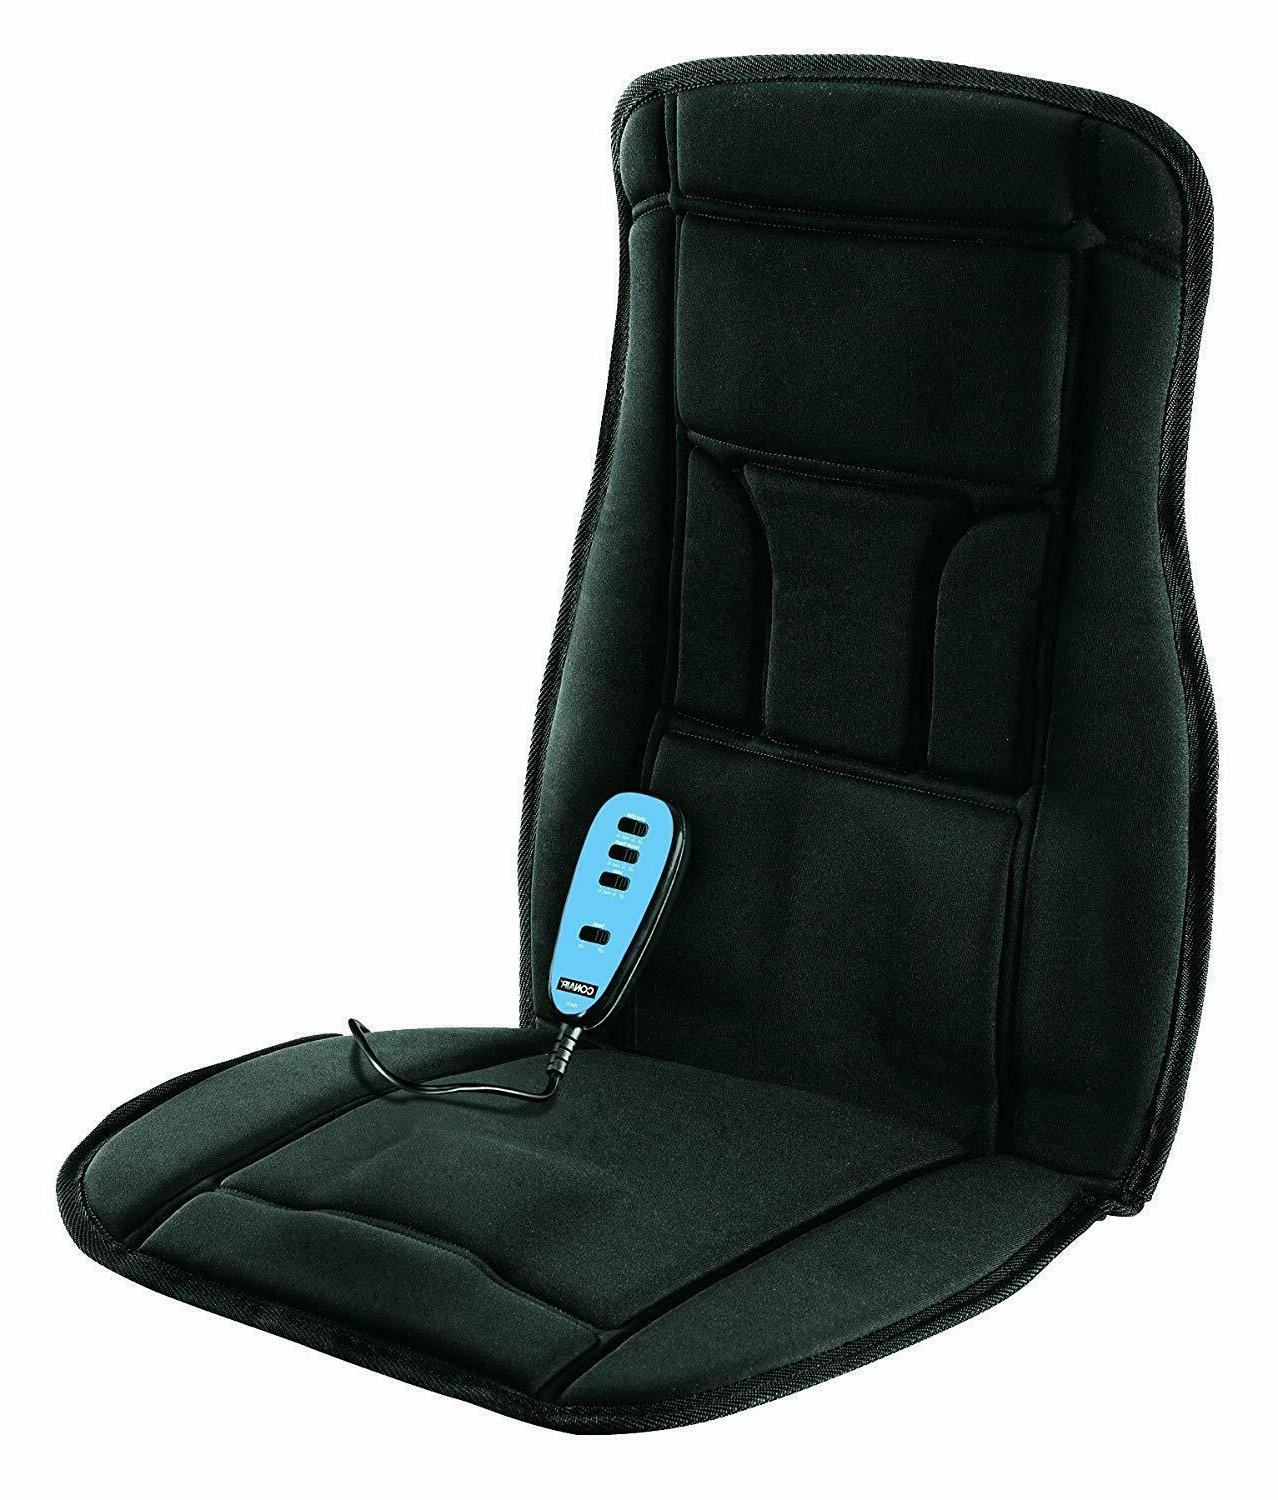 Massage Chair With Pain Office Lower Back Portable